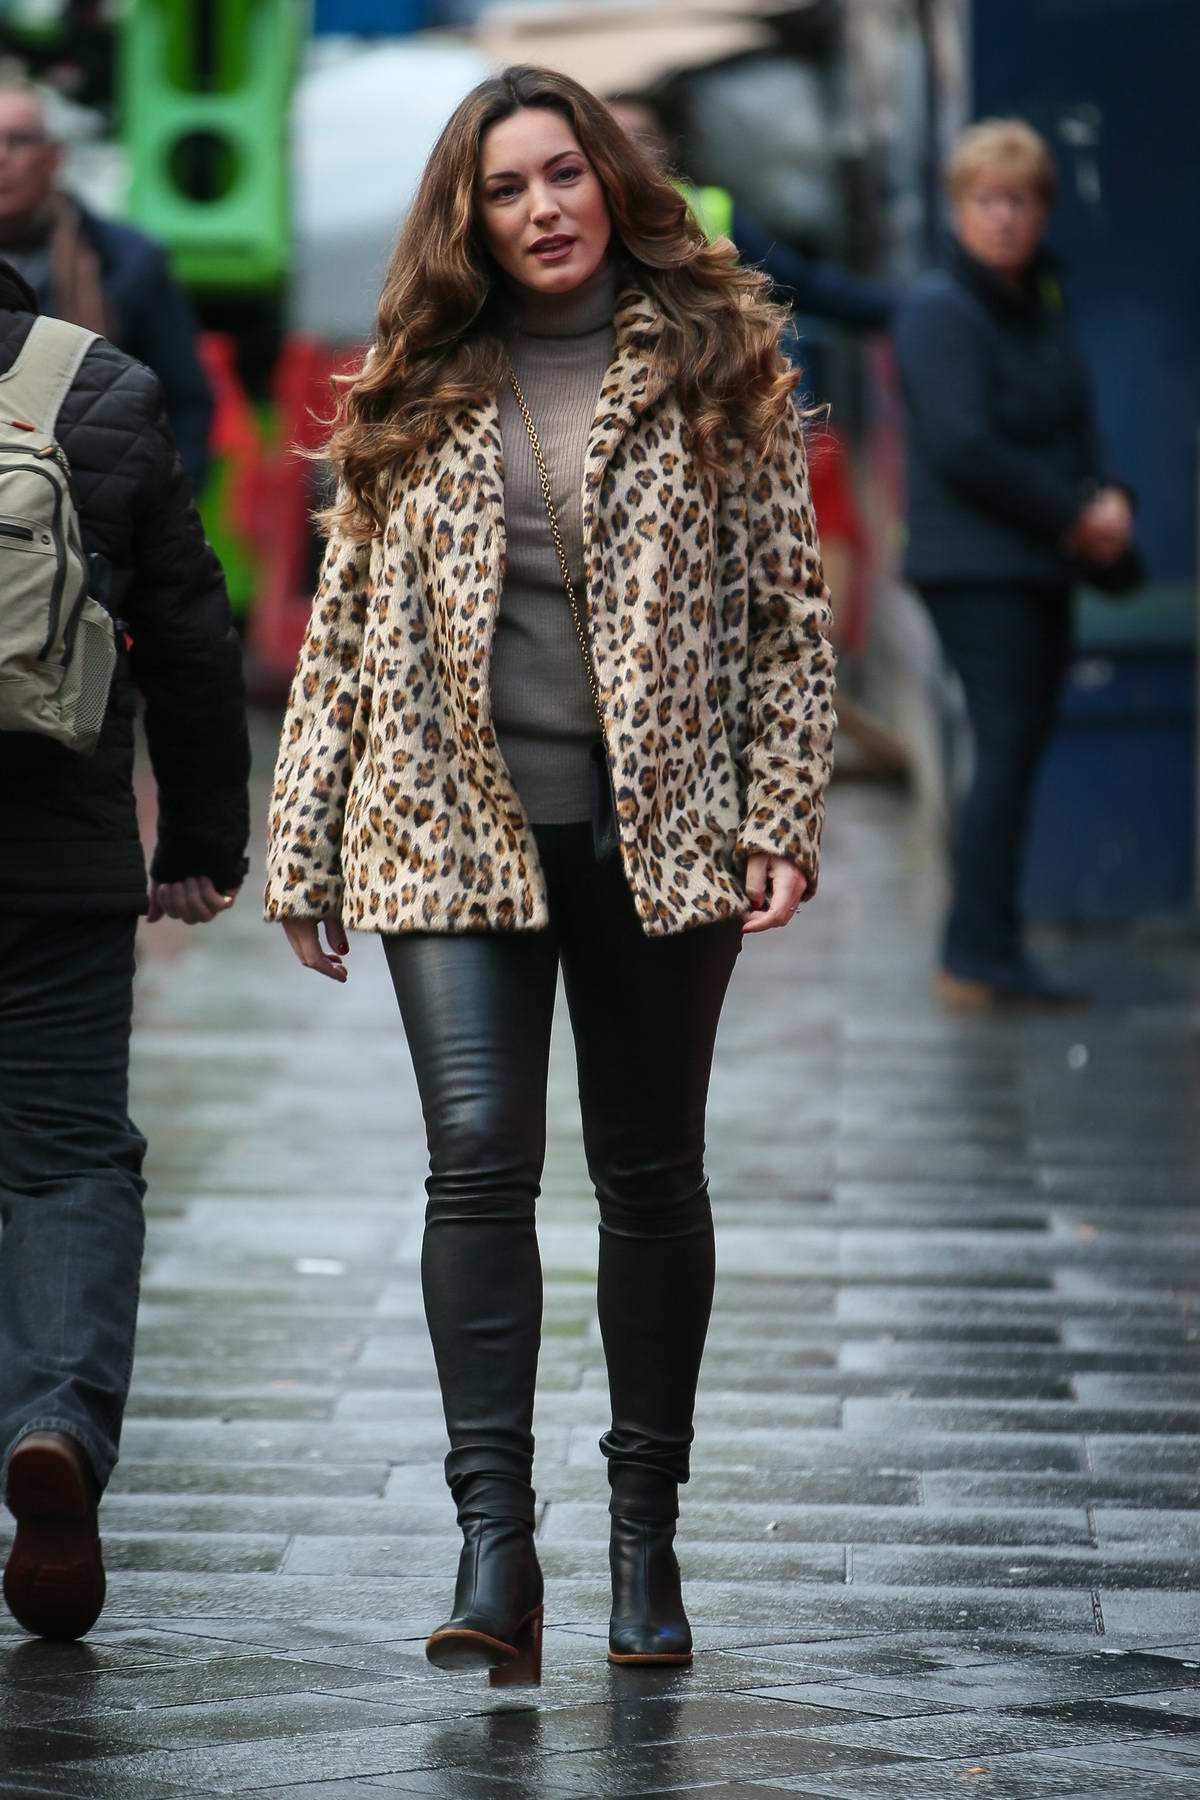 Kelly Brook wears leopard print jacket and black leather pants as she arrives at Global Radio studios in London, UK